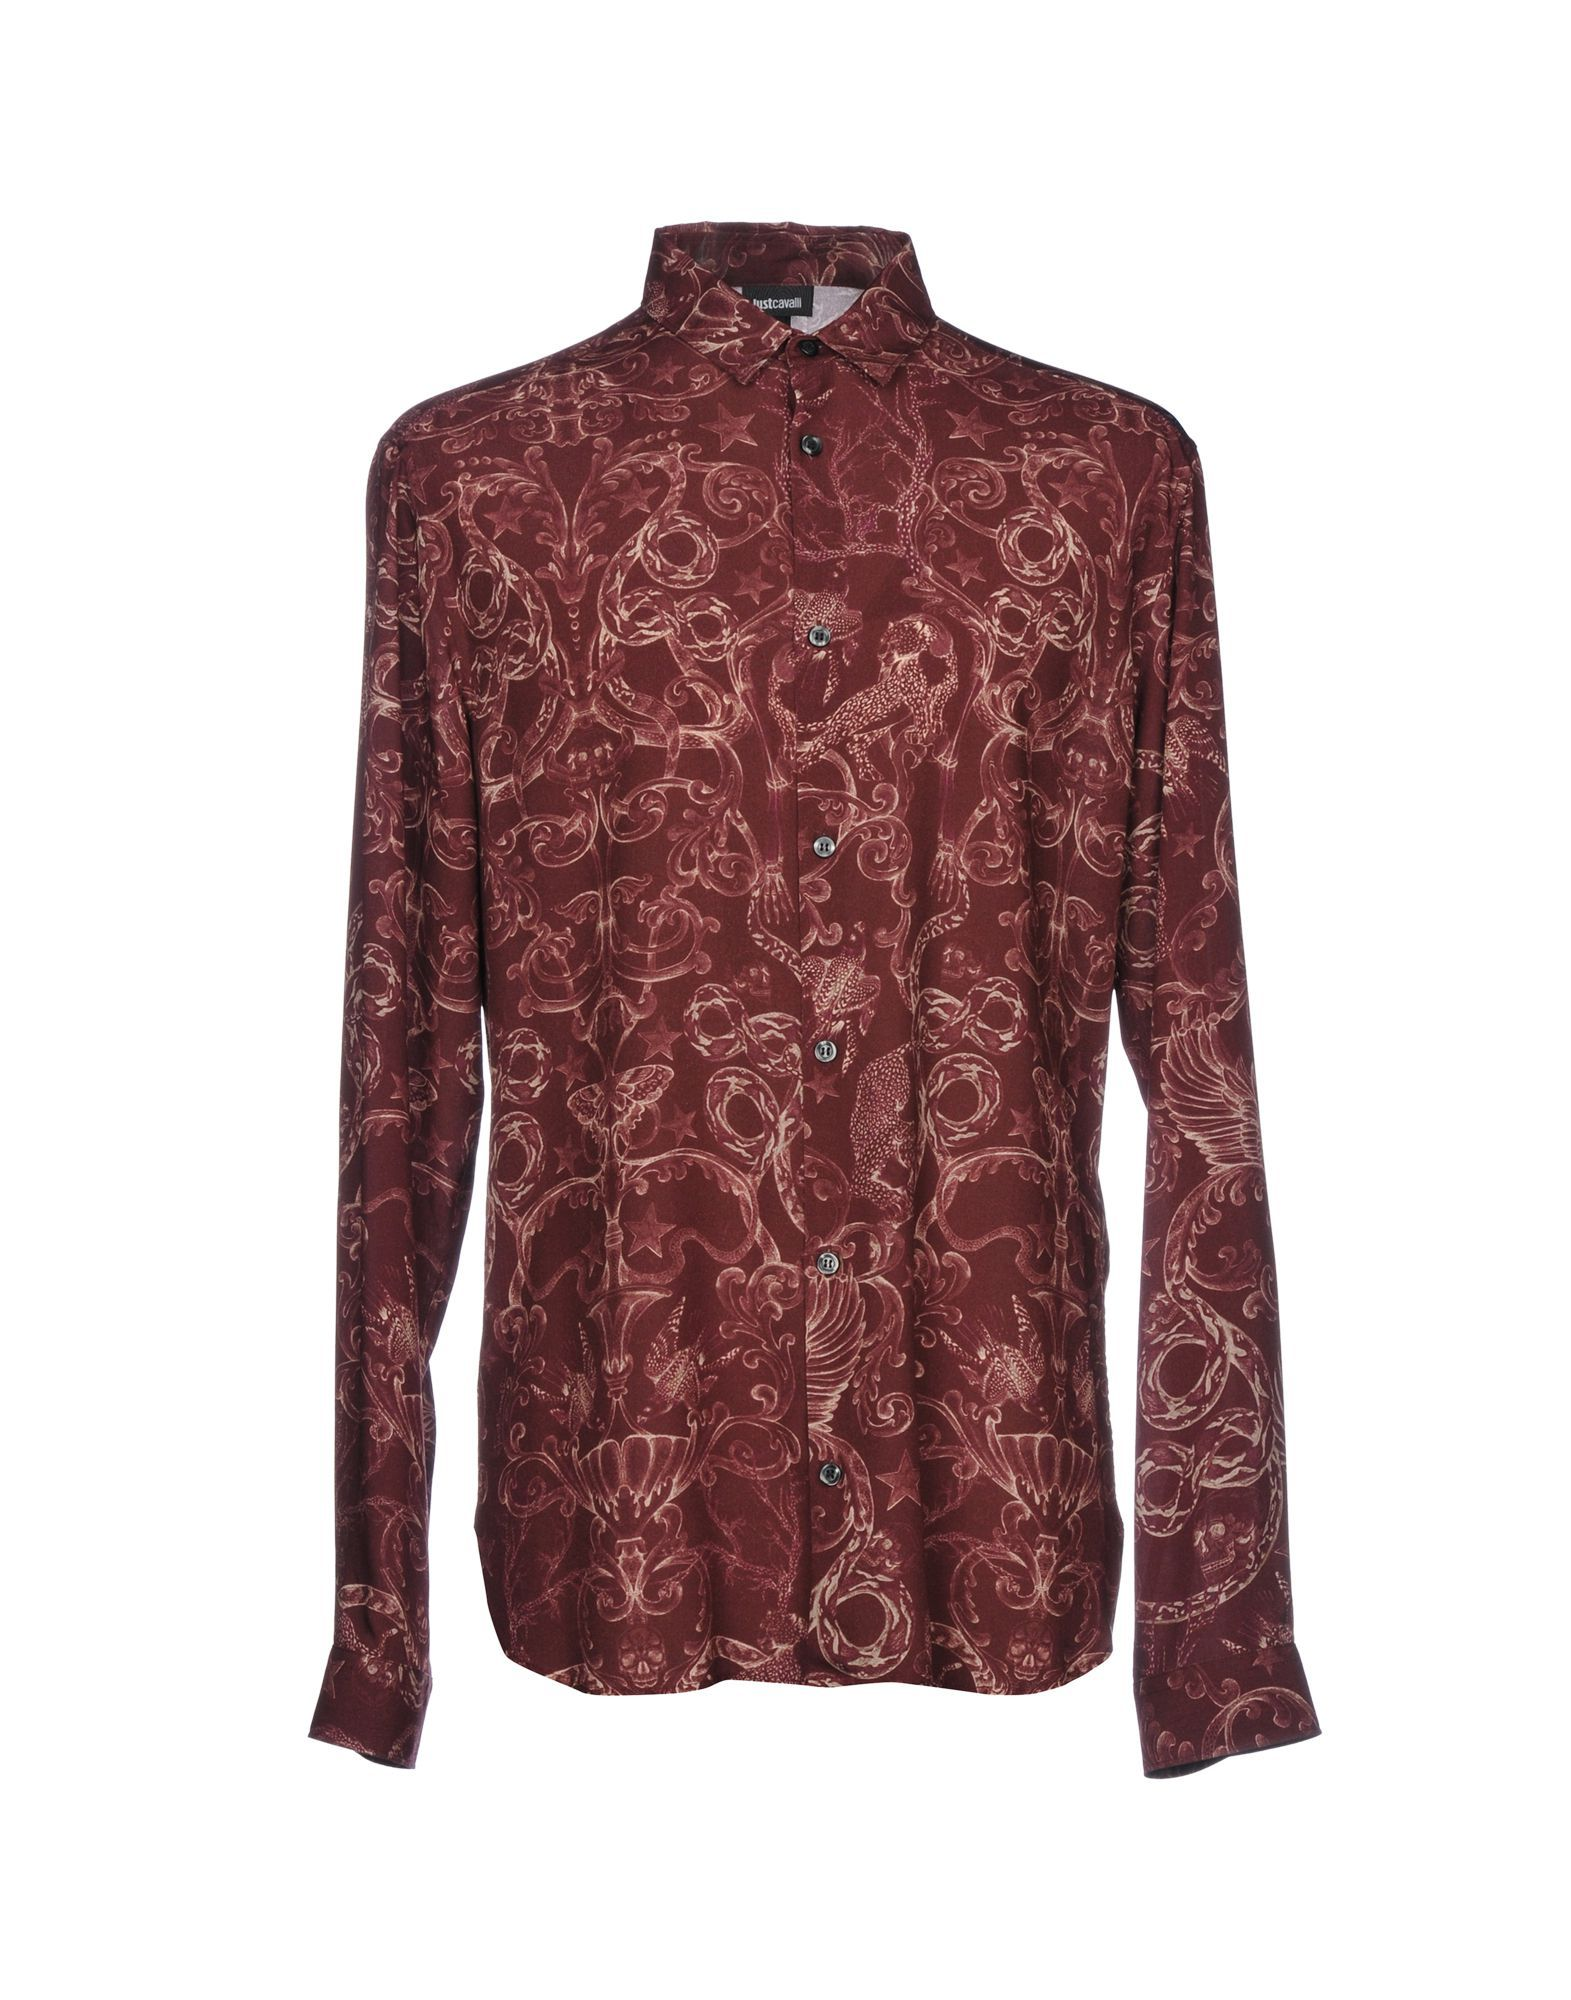 Just Cavalli Maroon Print Shirt